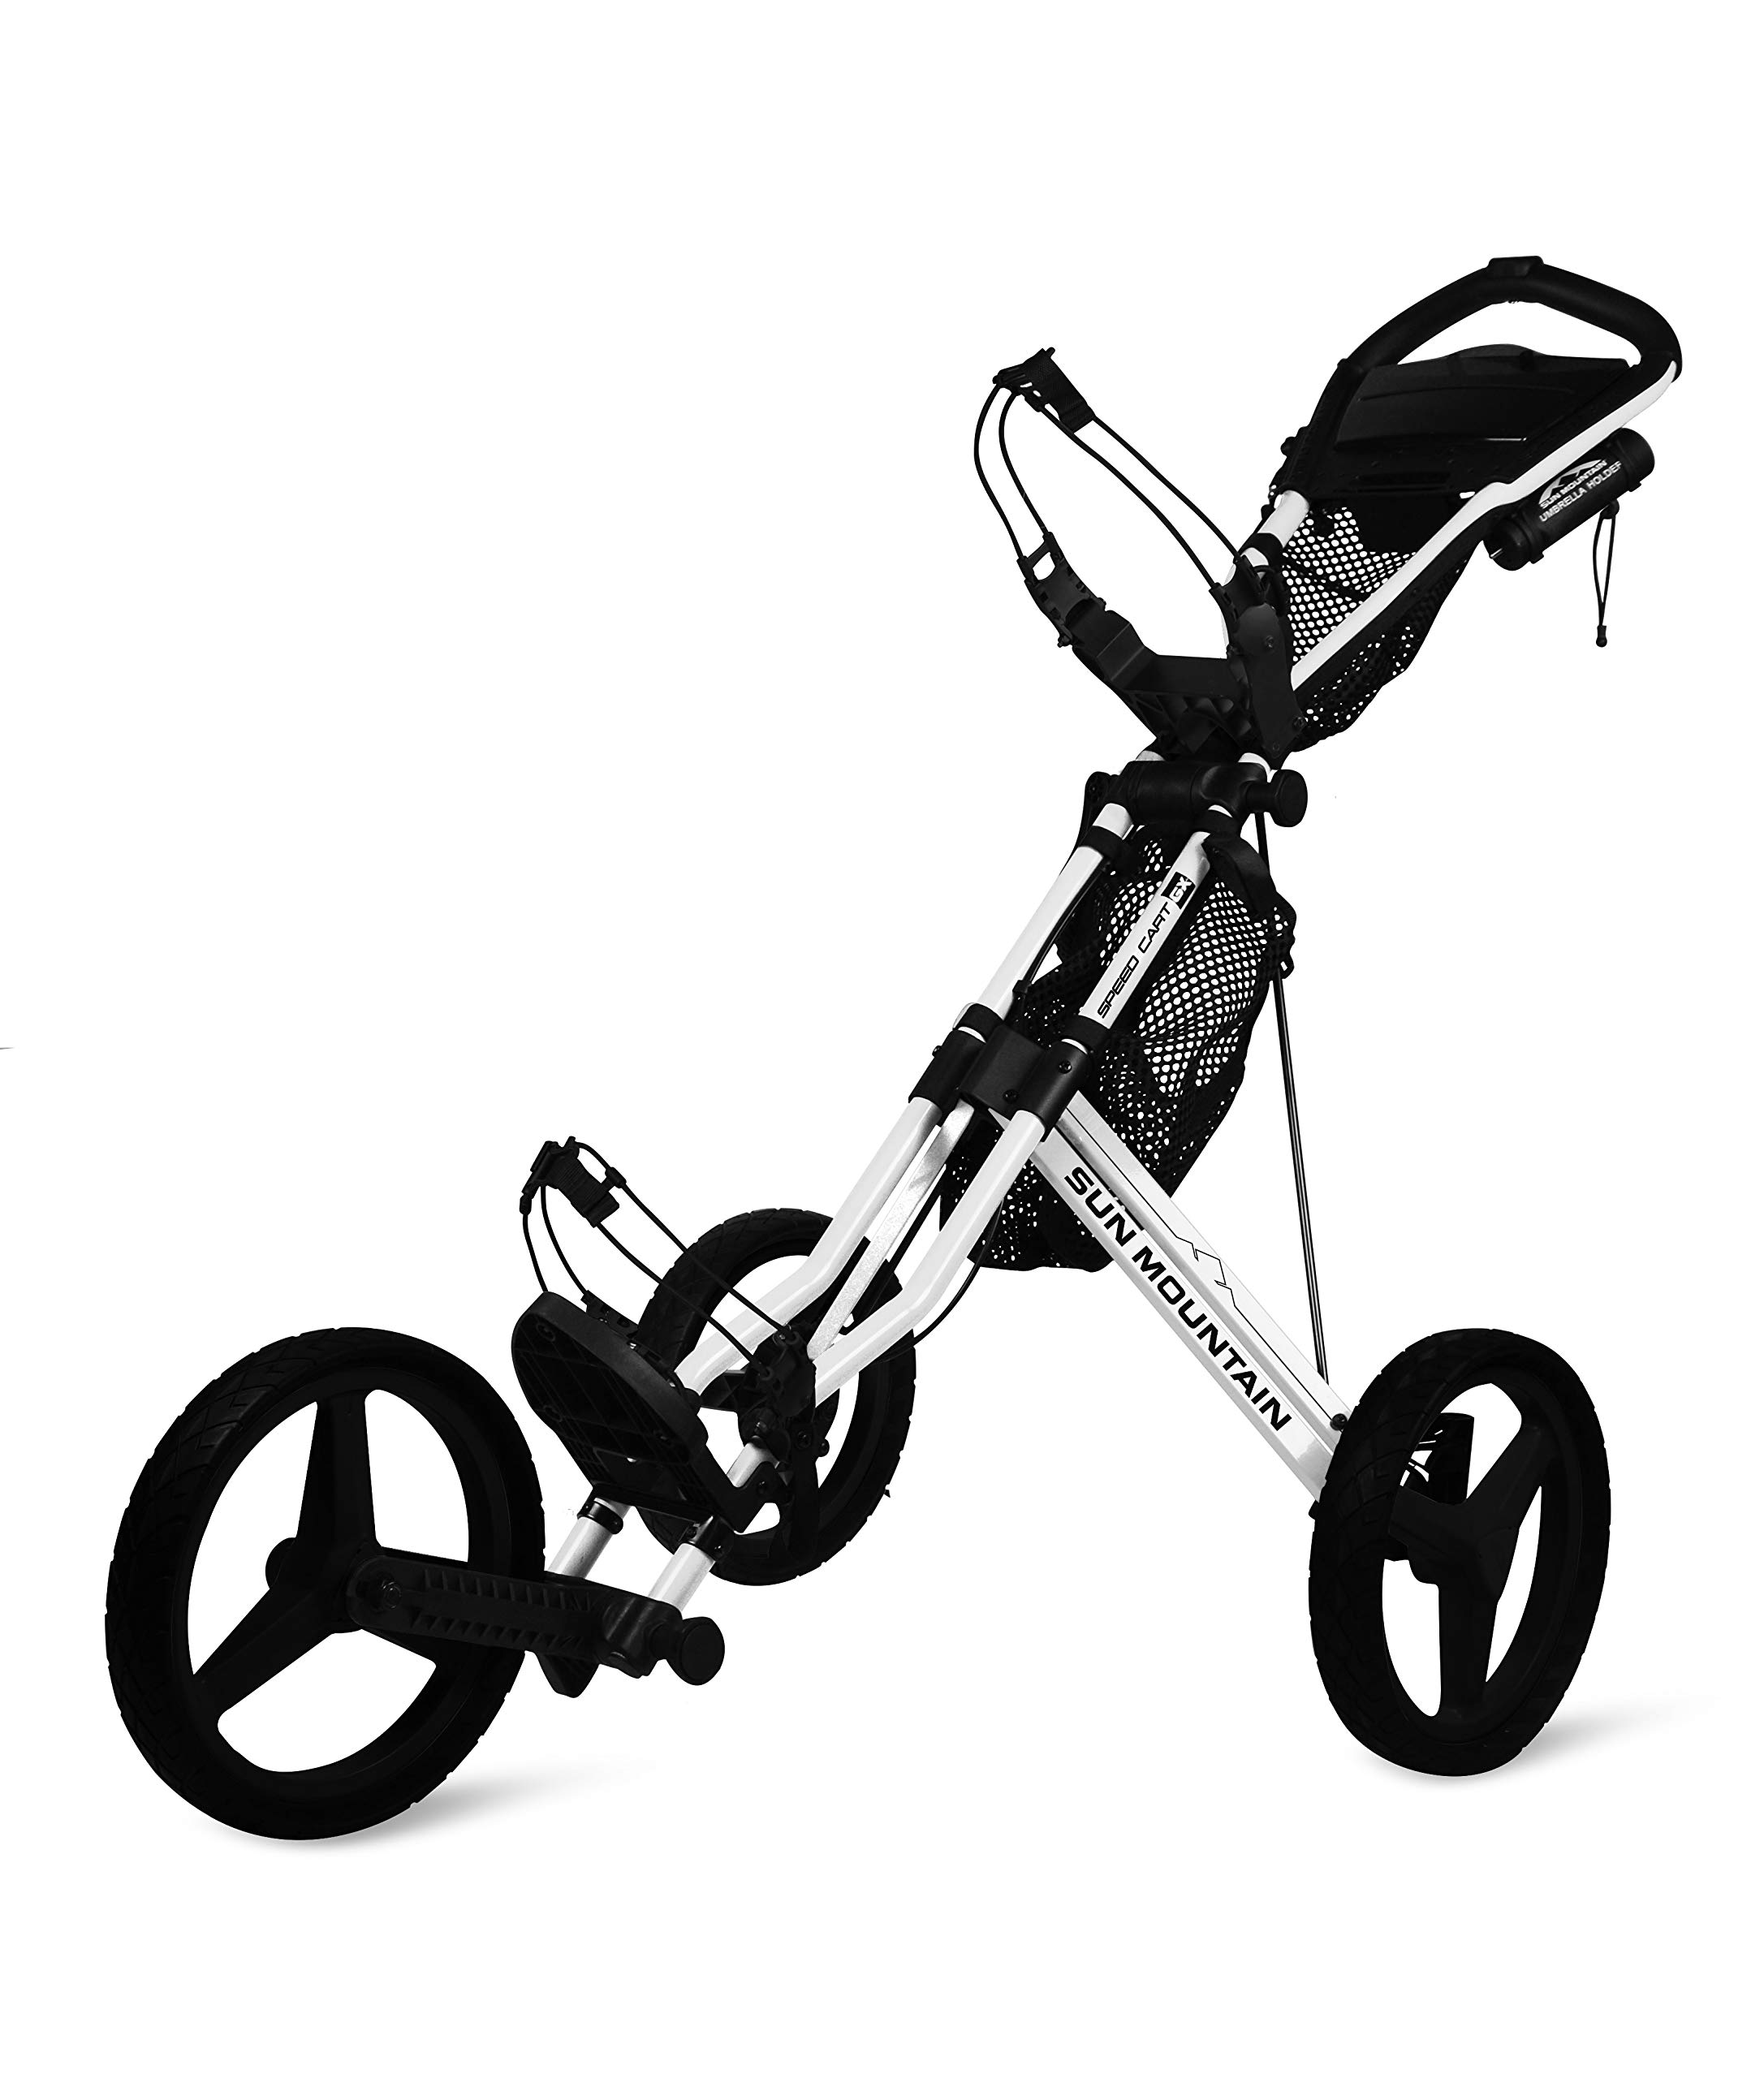 Sun Mountain Speed Cart Gx Push Cart White/Black